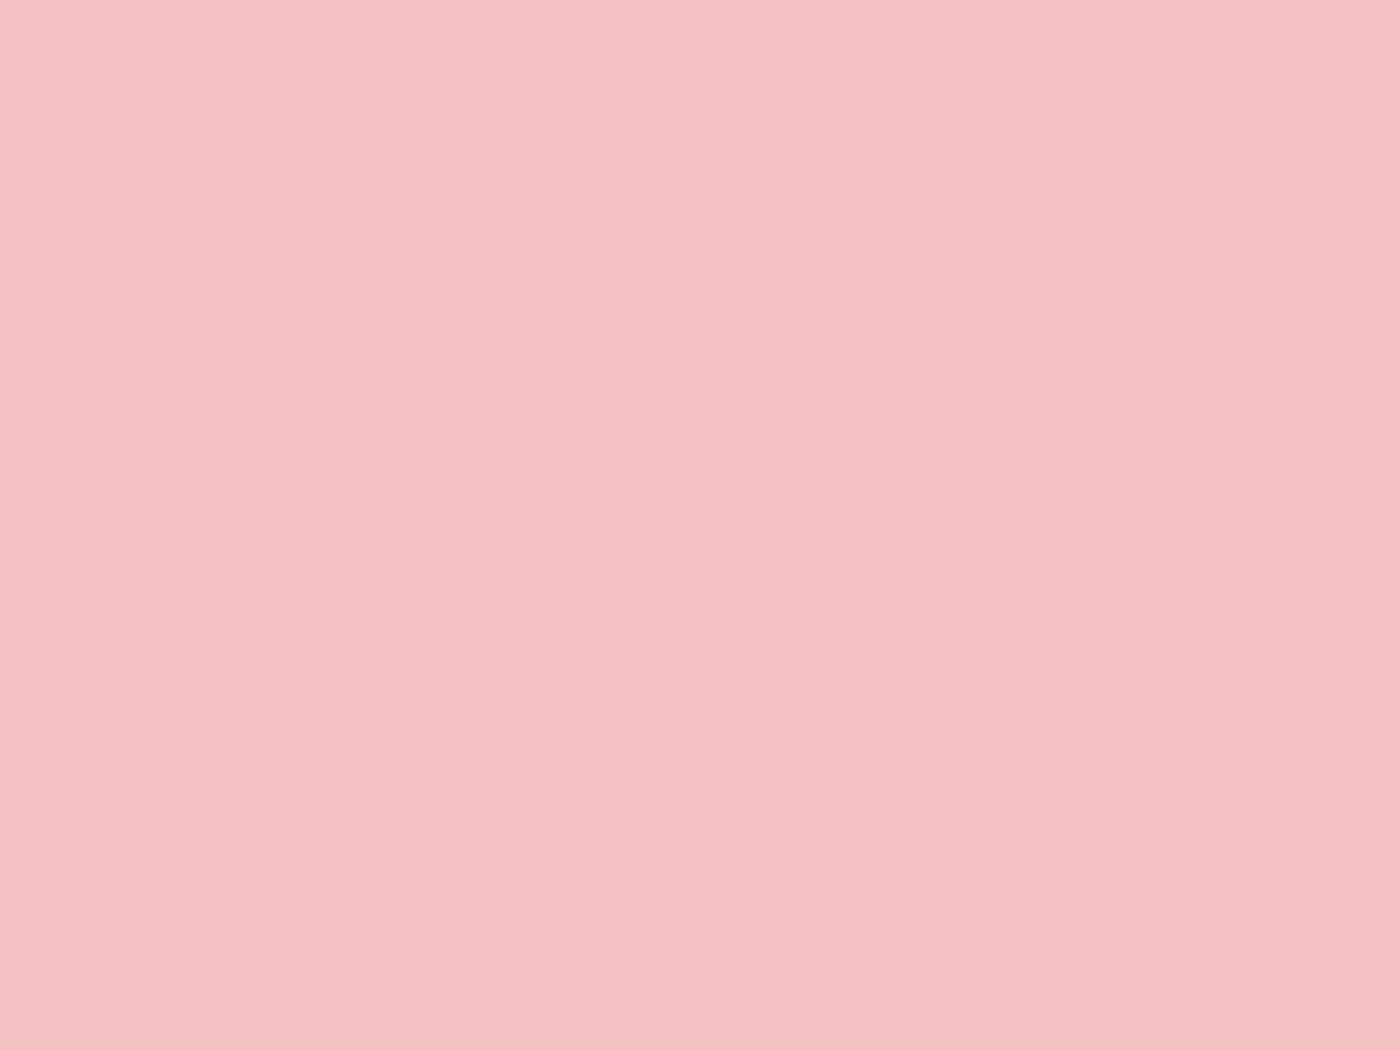 1400x1050 Baby Pink Solid Color Background